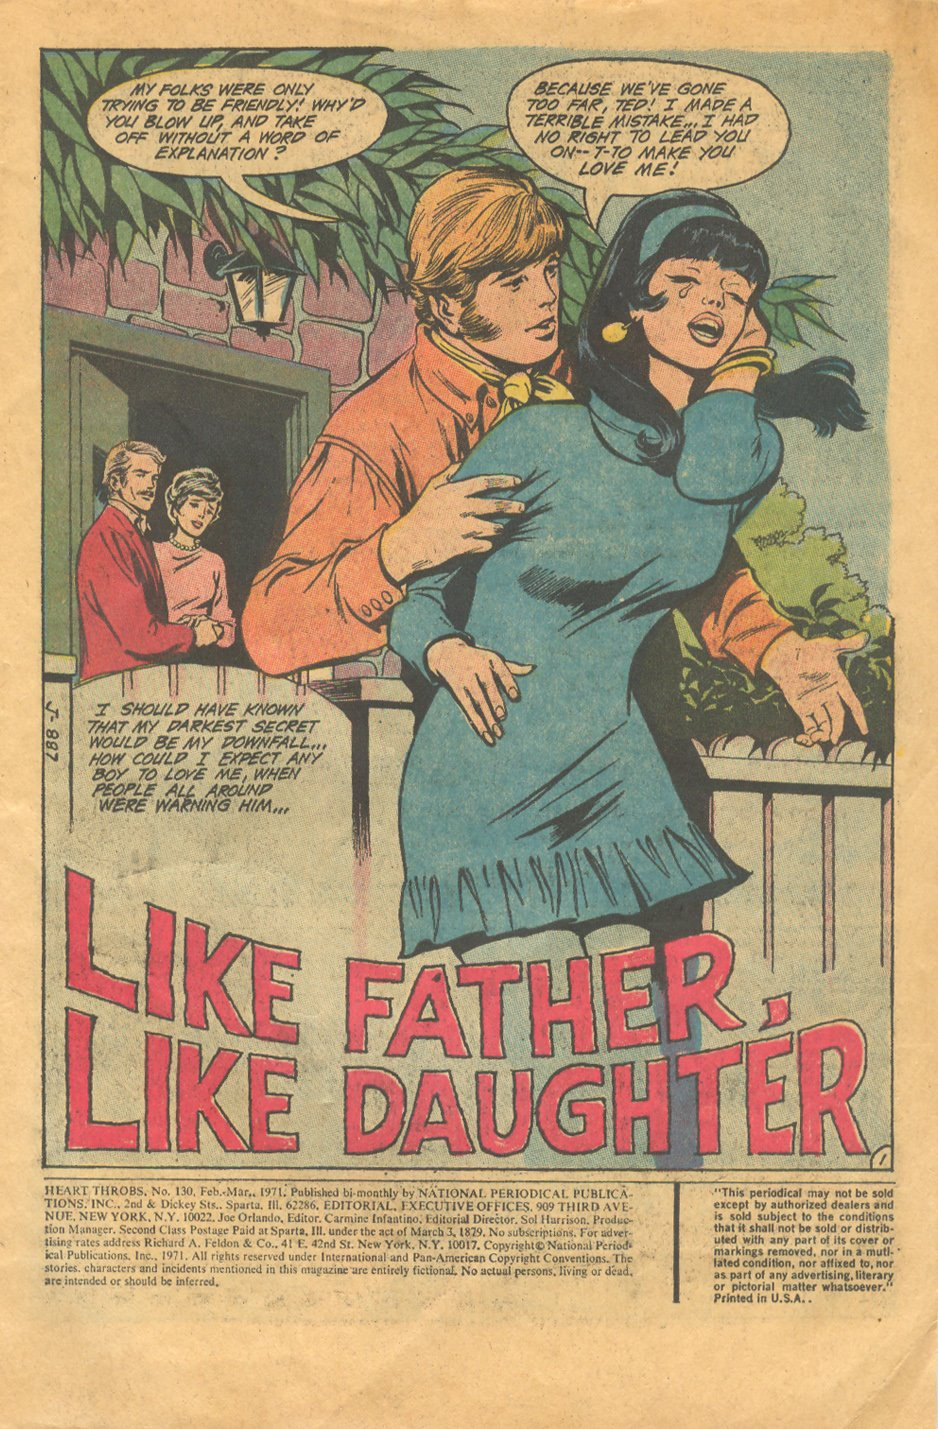 Heart Throbs DC Romance Comics Like Father Like Daughter